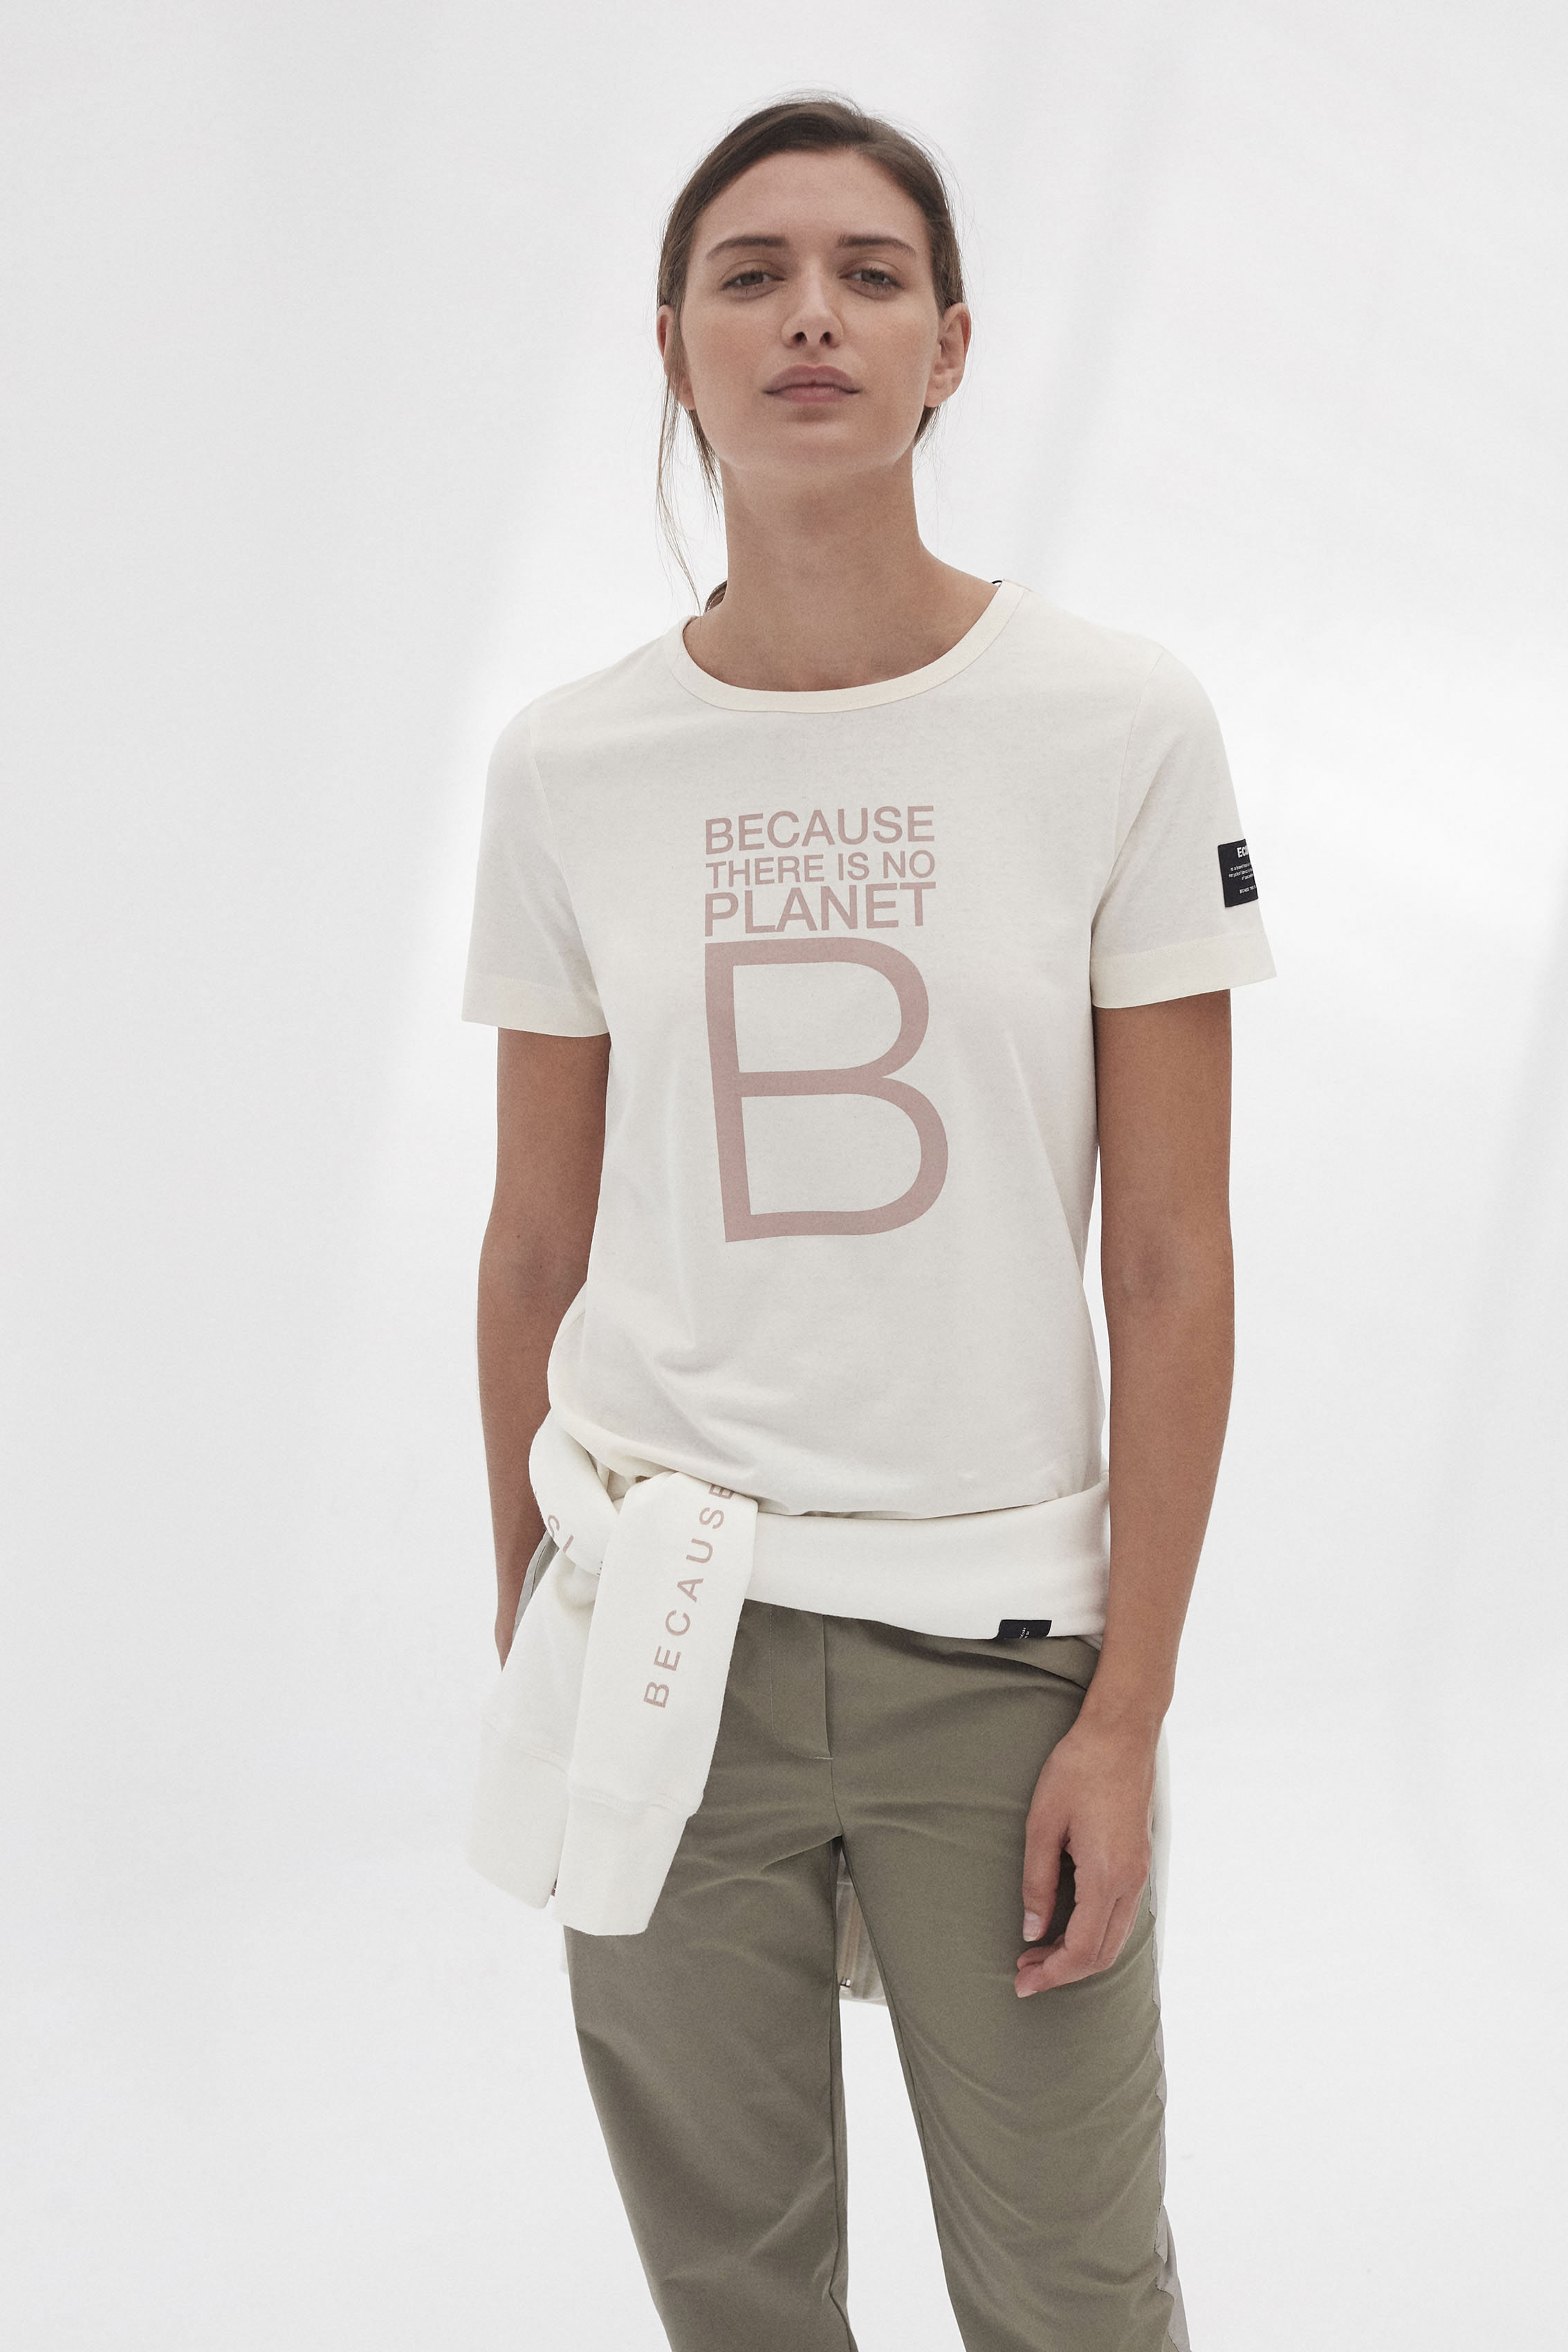 ECOALF | GO FOR GOOD | sustainable fashion | Galeries Lafayette Berlin